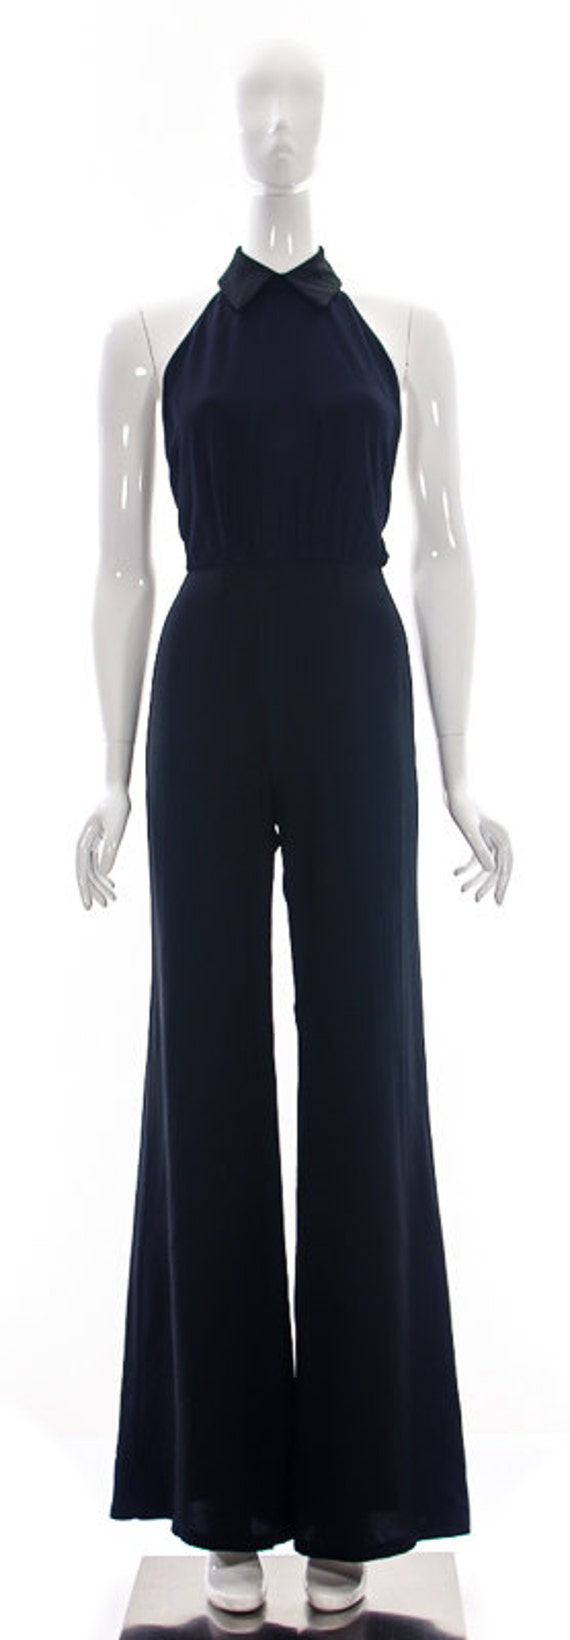 Navy Fashion Fabric Eco Black Halter Small Jumpsuit Recycled LowBack Romper Sustainable Conscious Tuxedo Repurposed rraq7